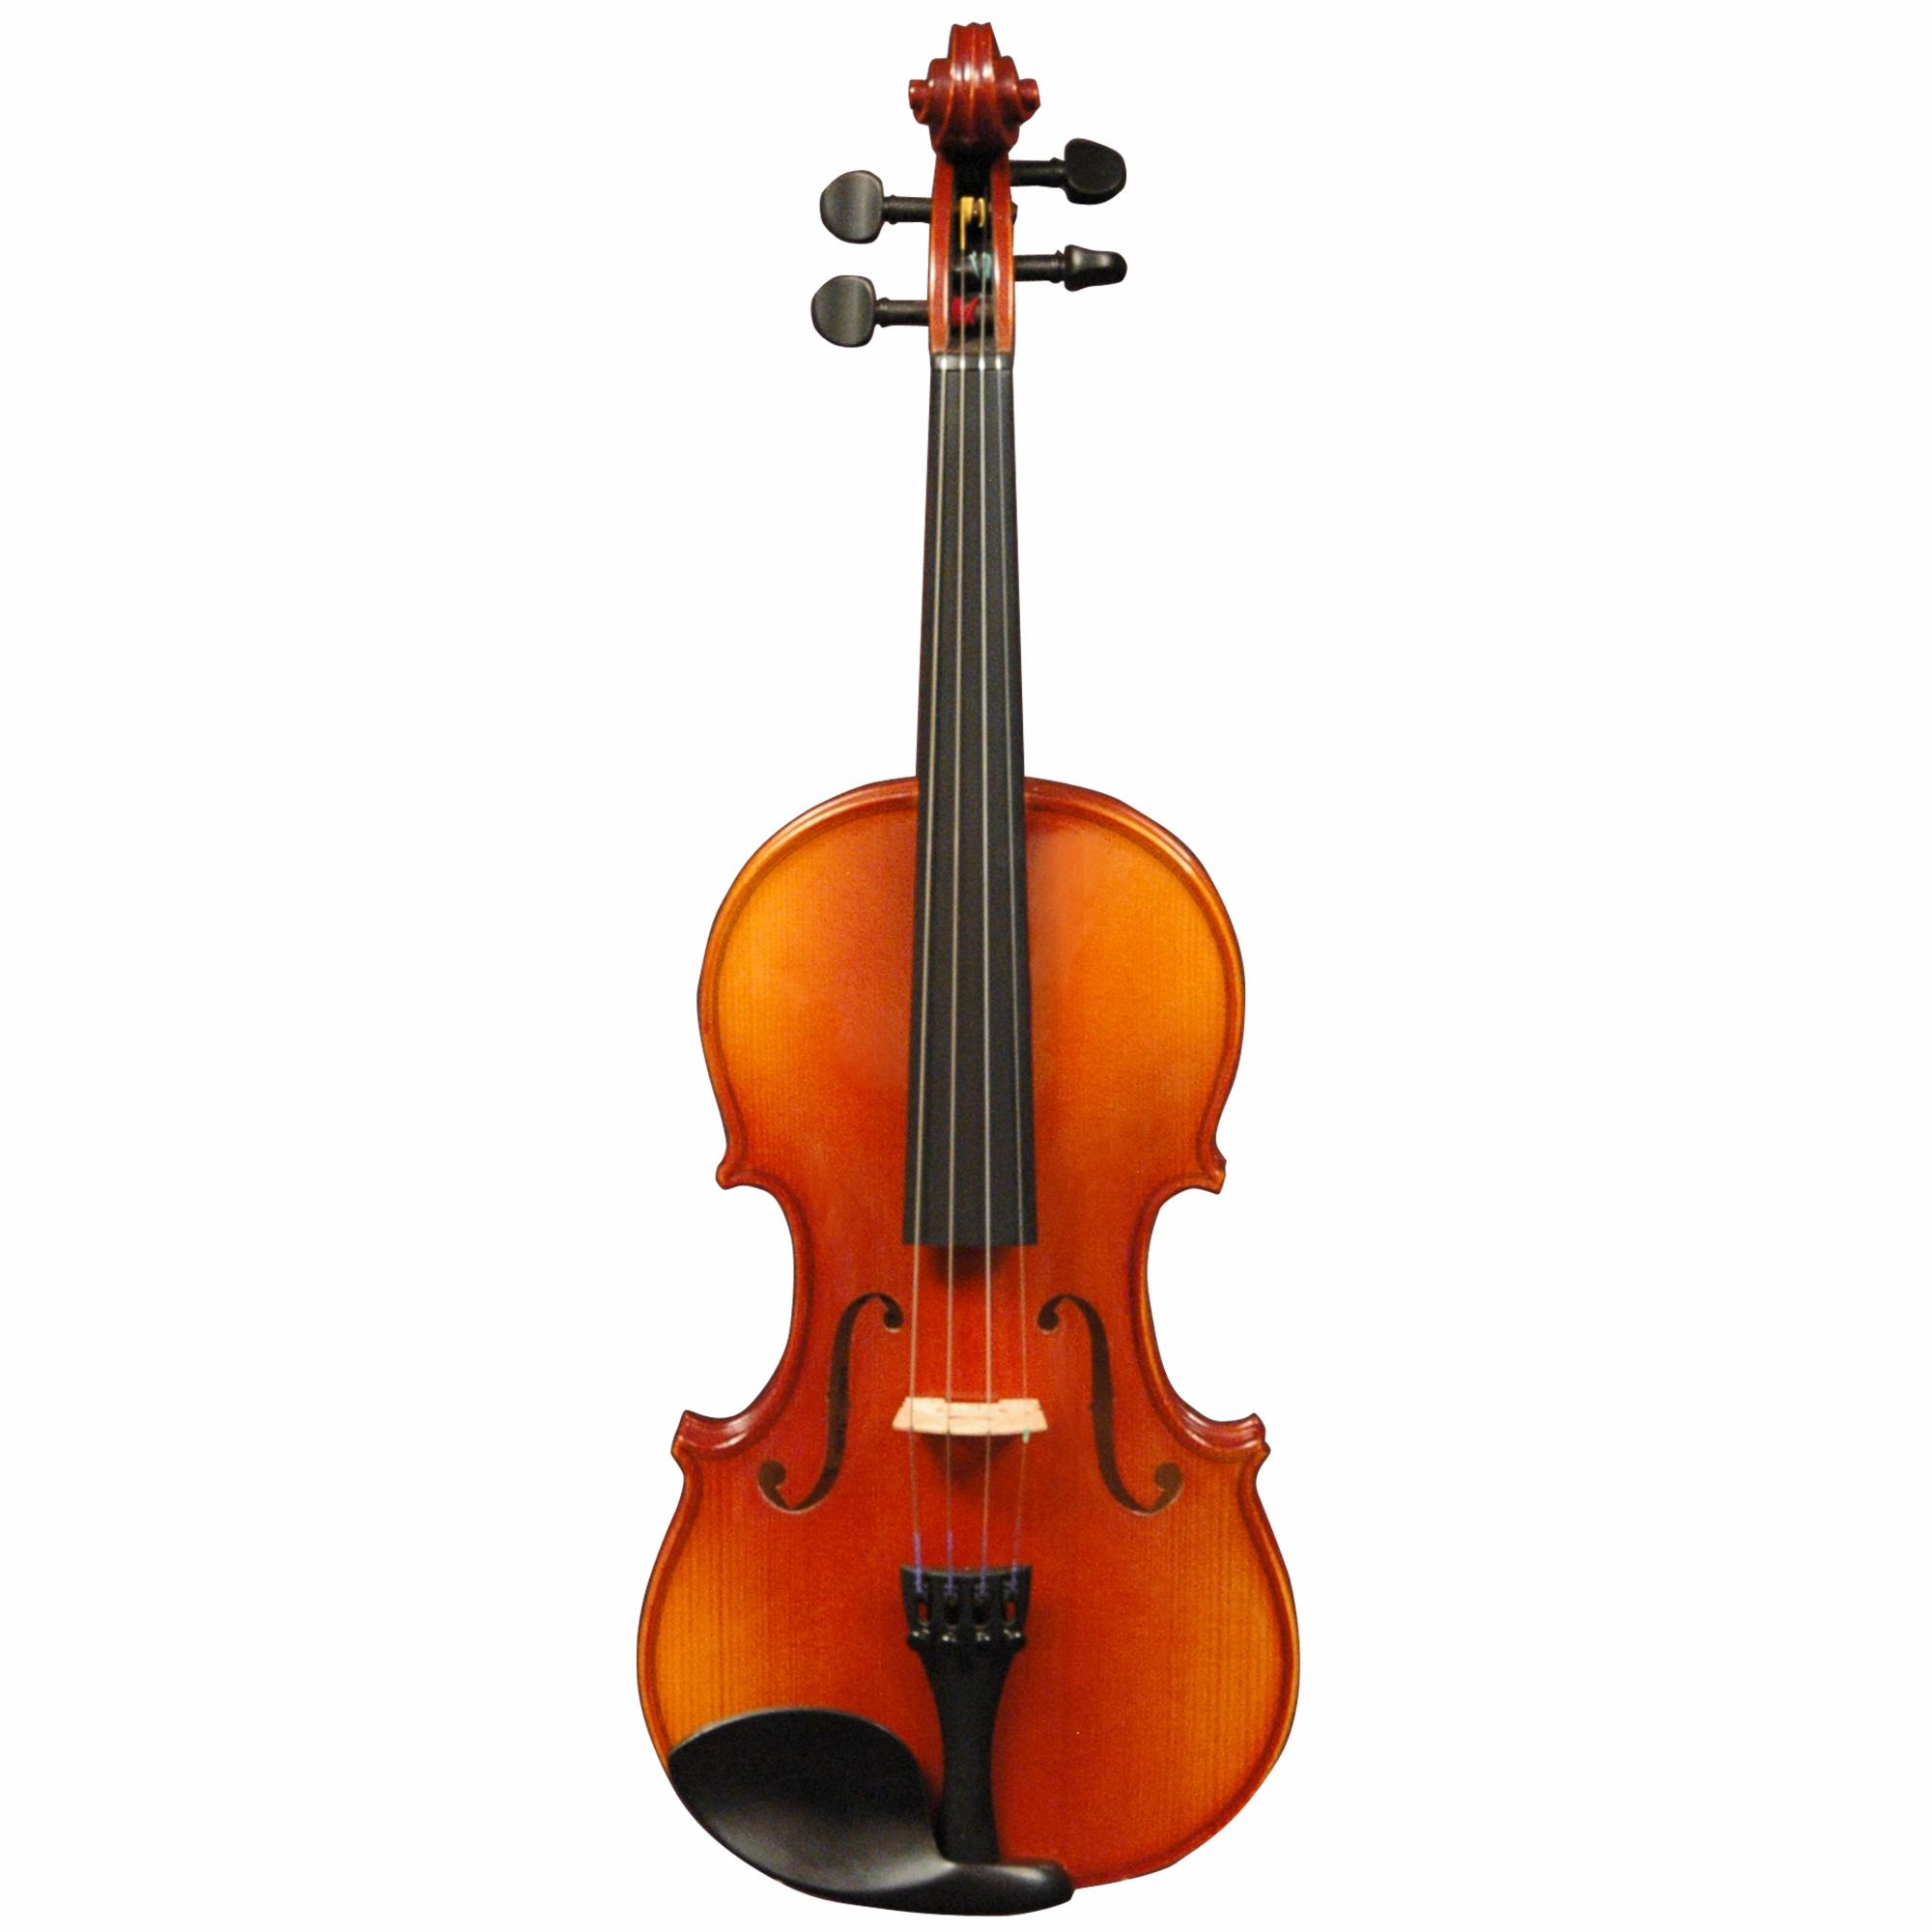 Buy Violin professional performance learning best cost music shop store